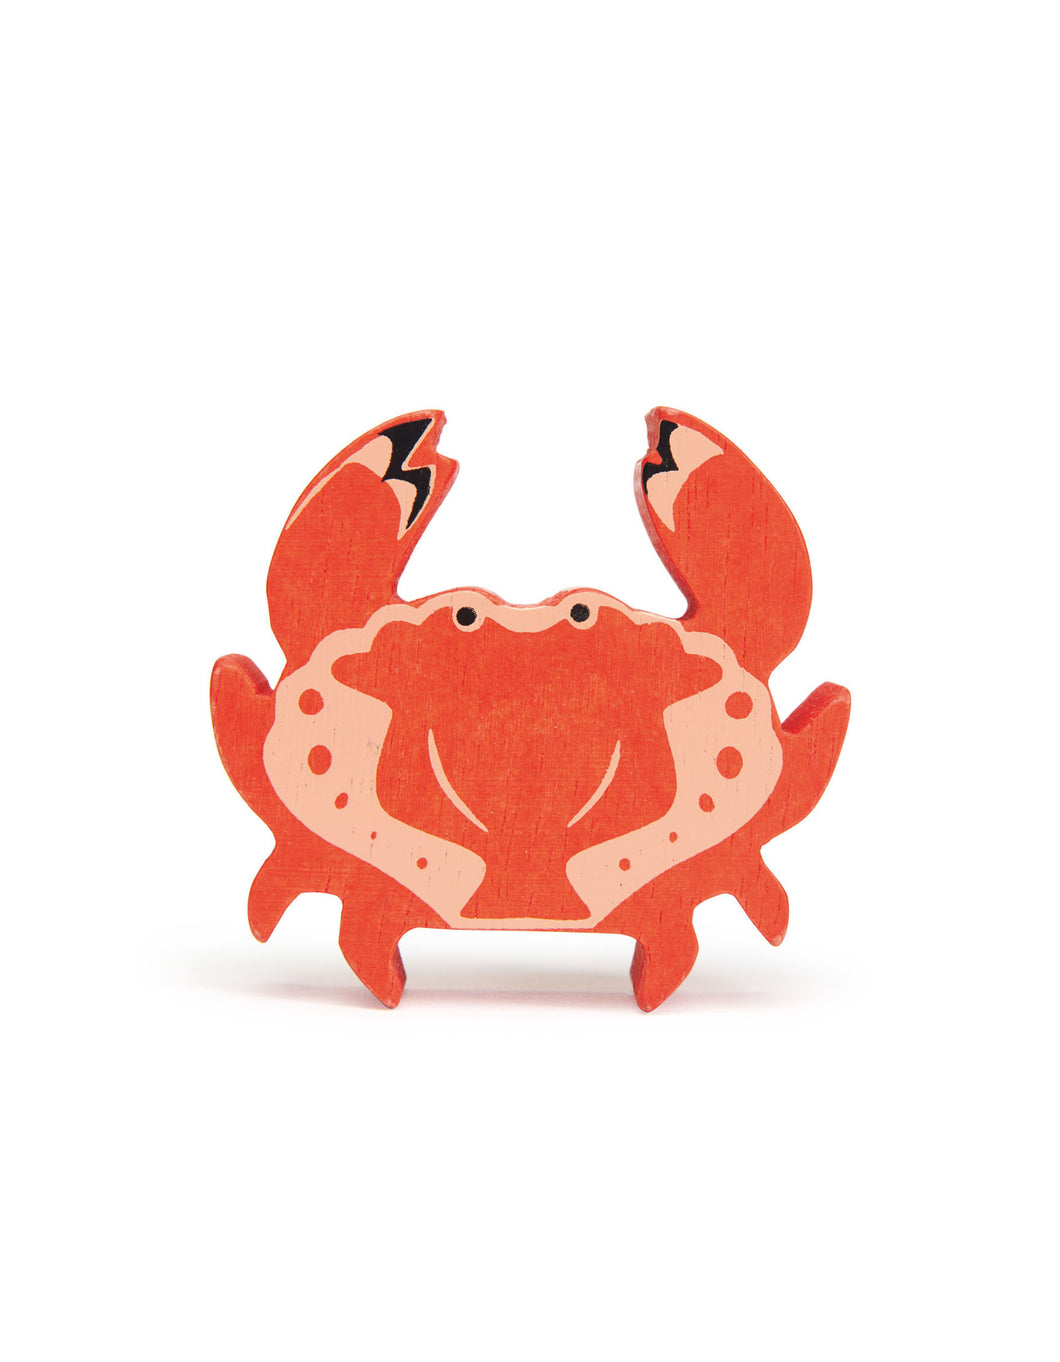 Wooden Coastal Animal - Crab